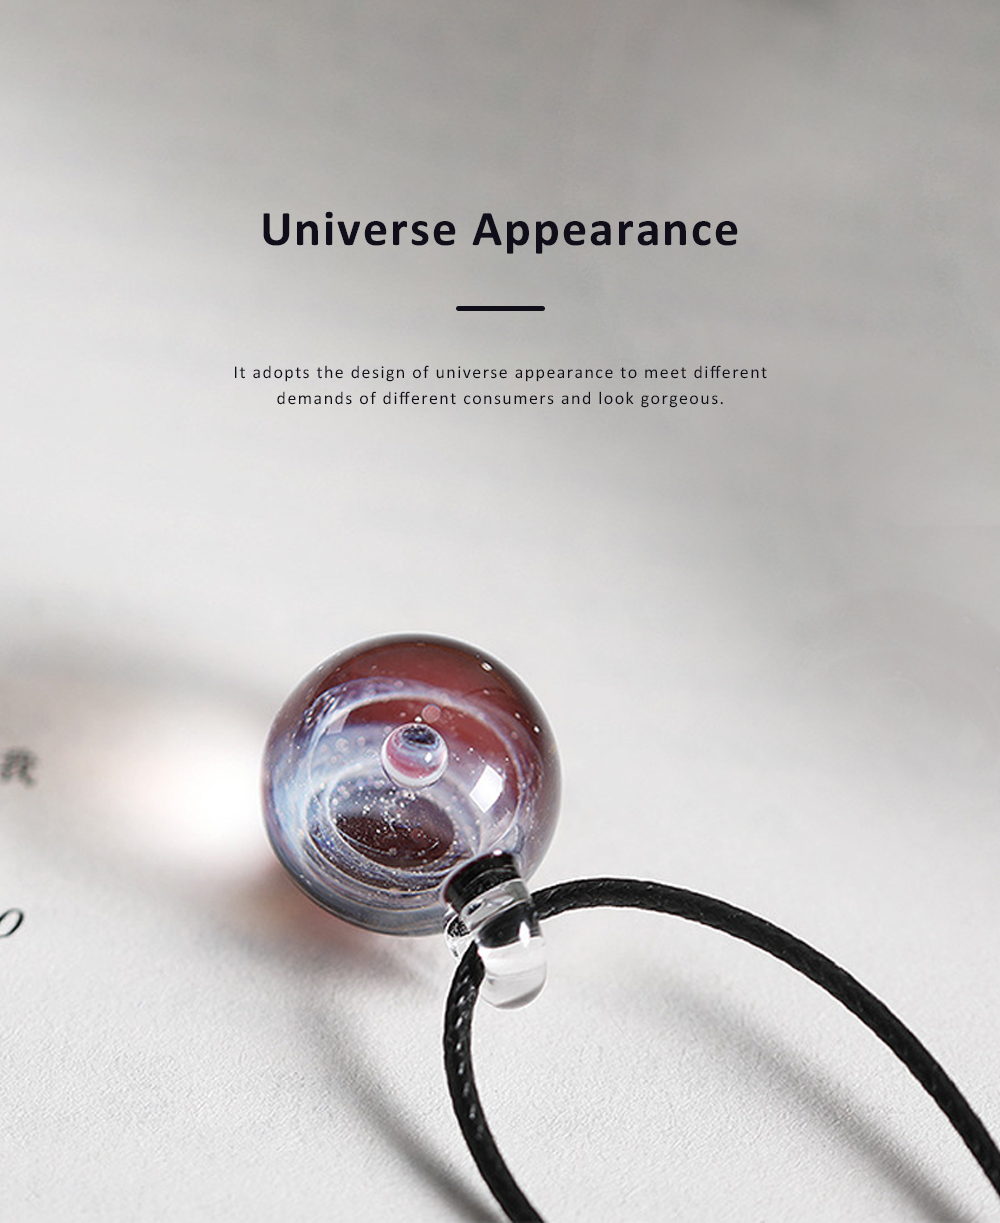 Cosmic Starry Glass Ball Necklace for Couple Gold and Silver Powder Multilevel Image Heat Resistant Natural Glass Decoration Valentine's Day Gift 1